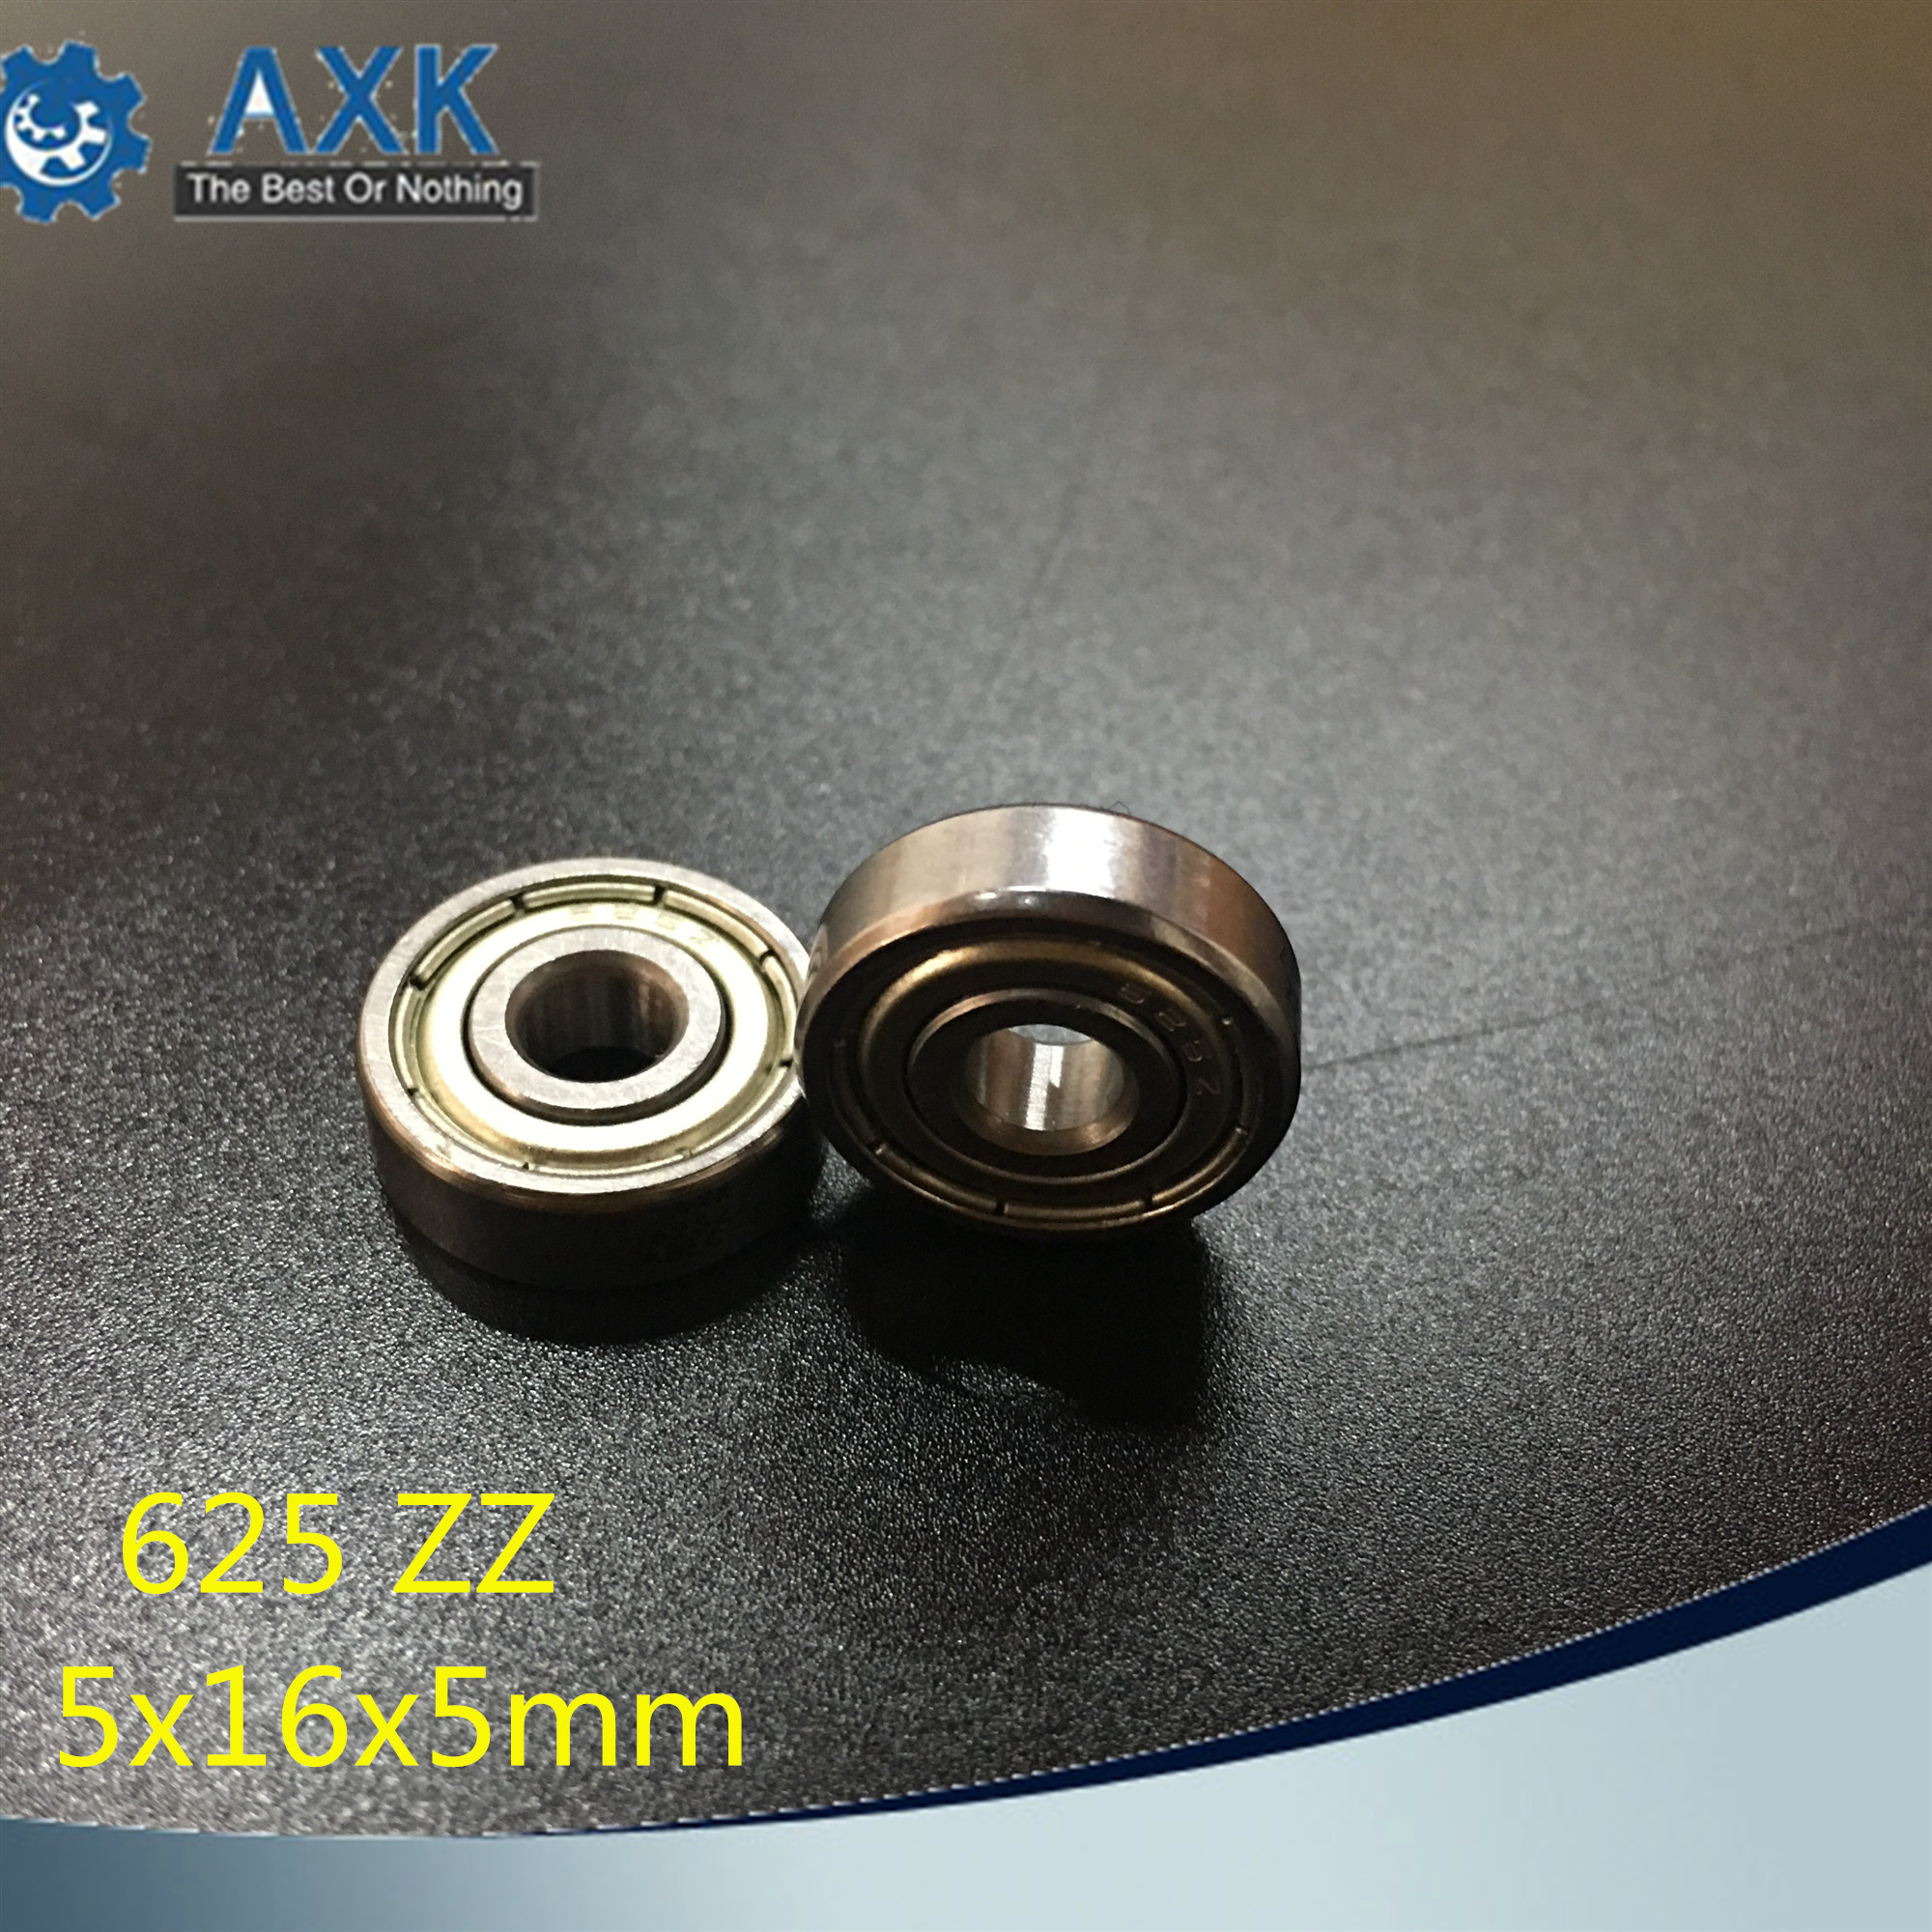 625ZZ <font><b>Bearing</b></font> <font><b>5*16*5</b></font> mm ABEC-5 ( 10 PCS ) Miniature 625Z Ball <font><b>Bearings</b></font> 625 ZZ For VORON Mobius 2/3 3D PrinterAB image